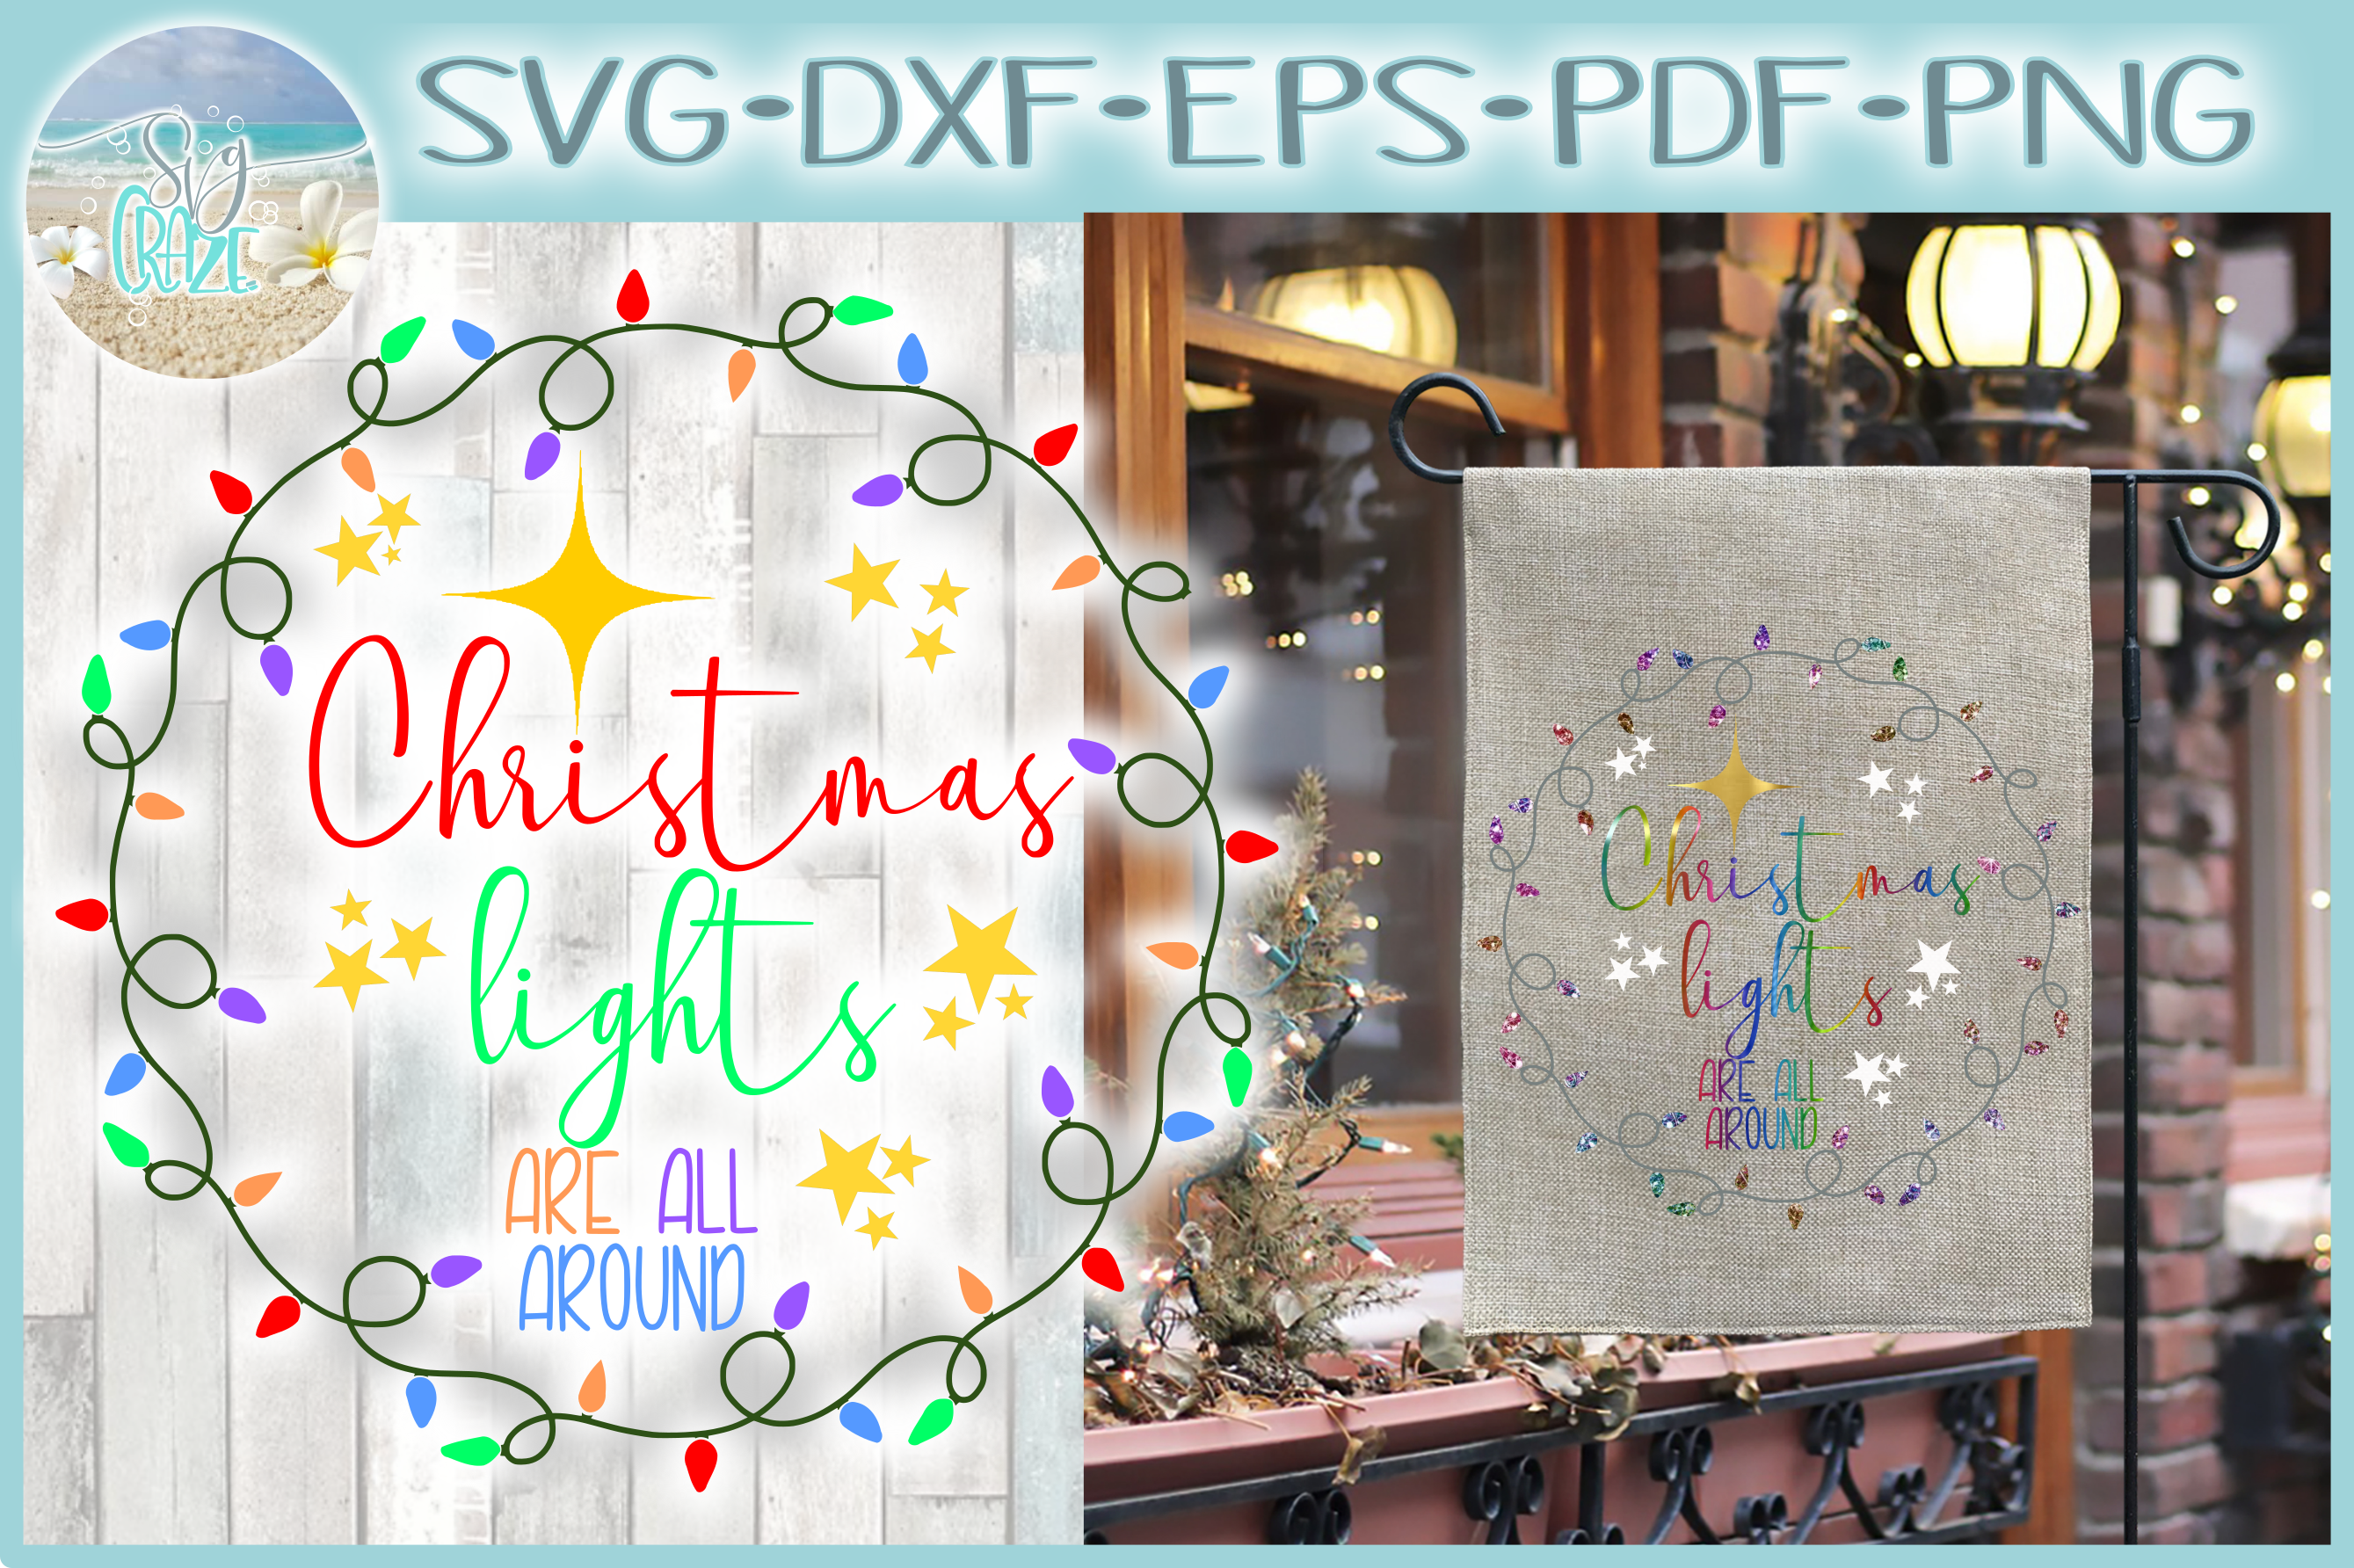 Christmas Lights Are All Around Quote SVG example image 1